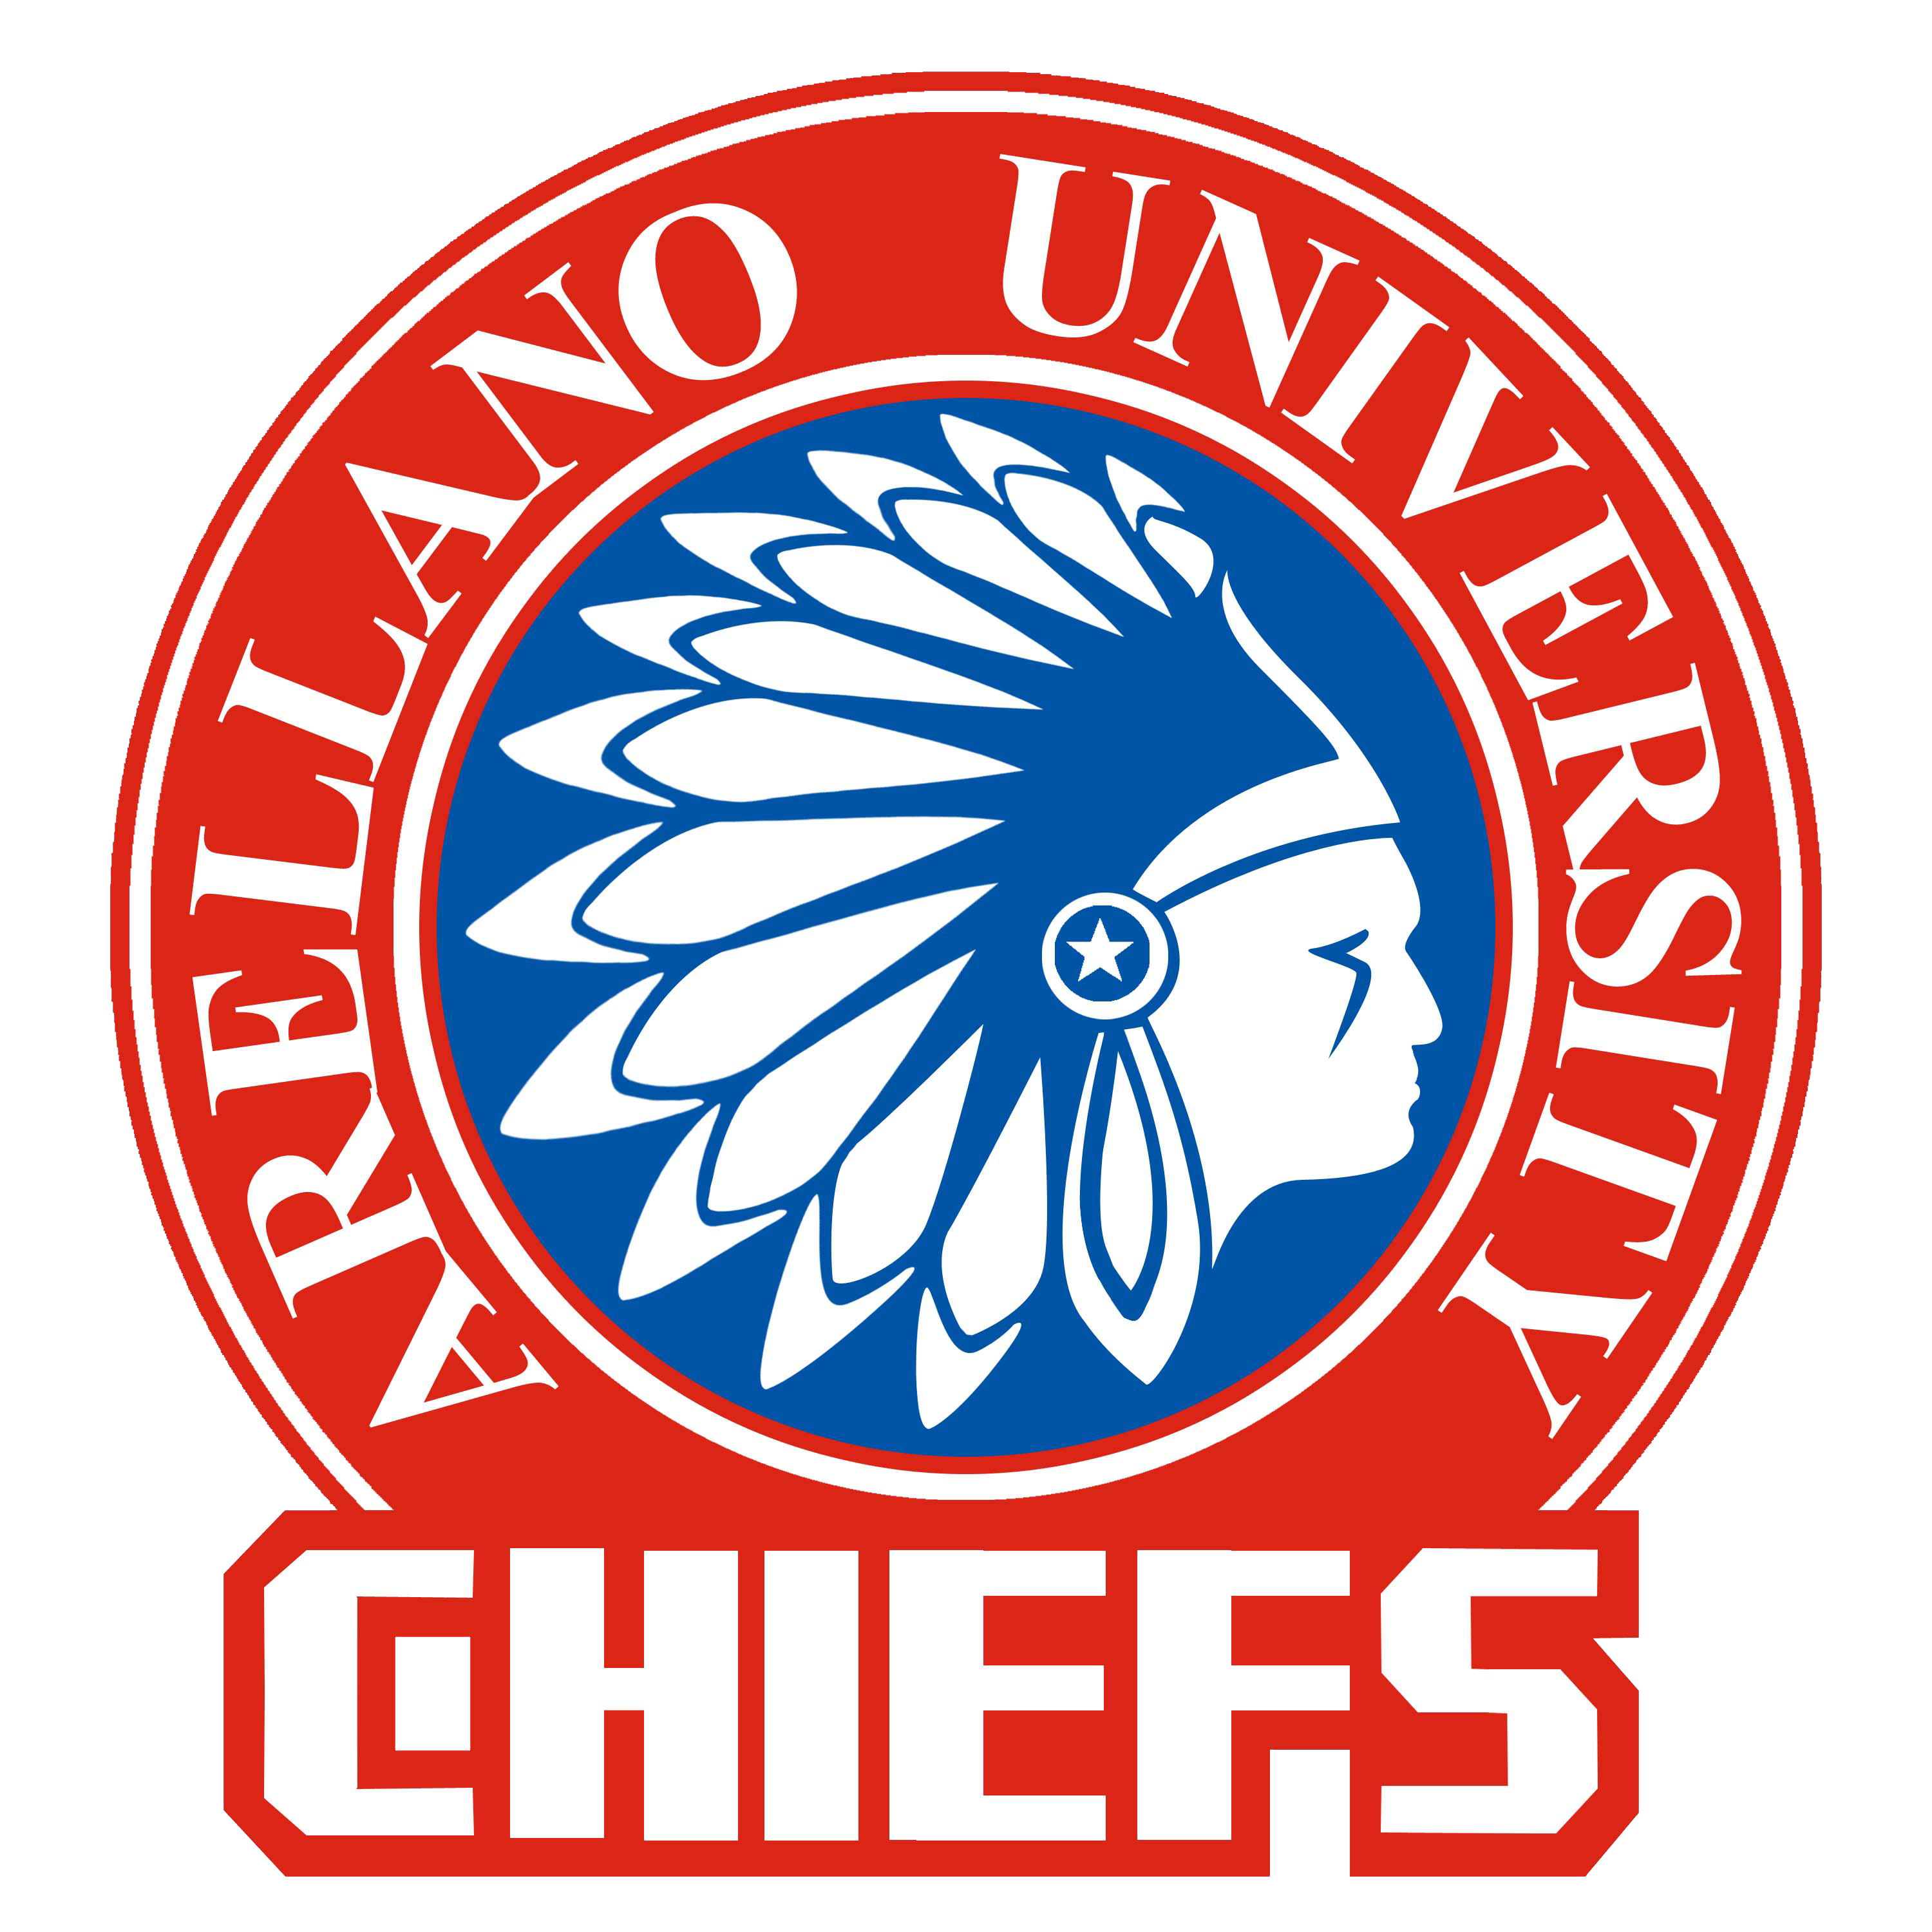 au chiefs arellano university Flaming Ball Logo Flaming Ball Logo